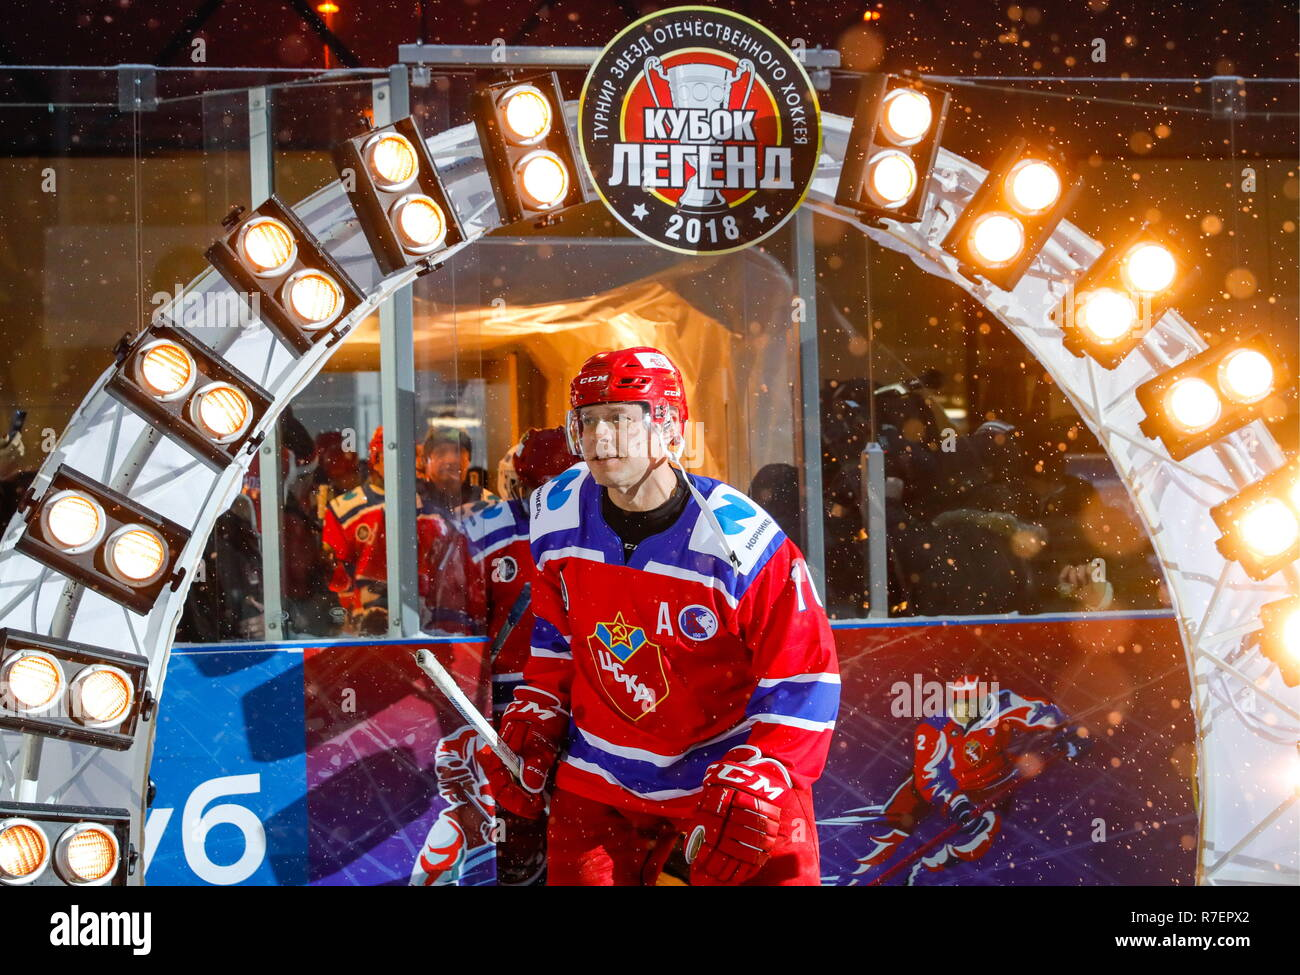 Moscow, Russia. 09th Dec, 2018. World Legends Hockey League President Pavel Bure of the CSKA team during the 5th Legends Cup ice hockey tournament at the Luzhki Club ice rink; held for retired senior ice hockey players, this year's tournament marks the 100th birth anniversary of Soviet ice hockey player and coach Anatoly Tarasov (1918-1995). Mikhail Japaridze/TASS Credit: ITAR-TASS News Agency/Alamy Live News - Stock Image